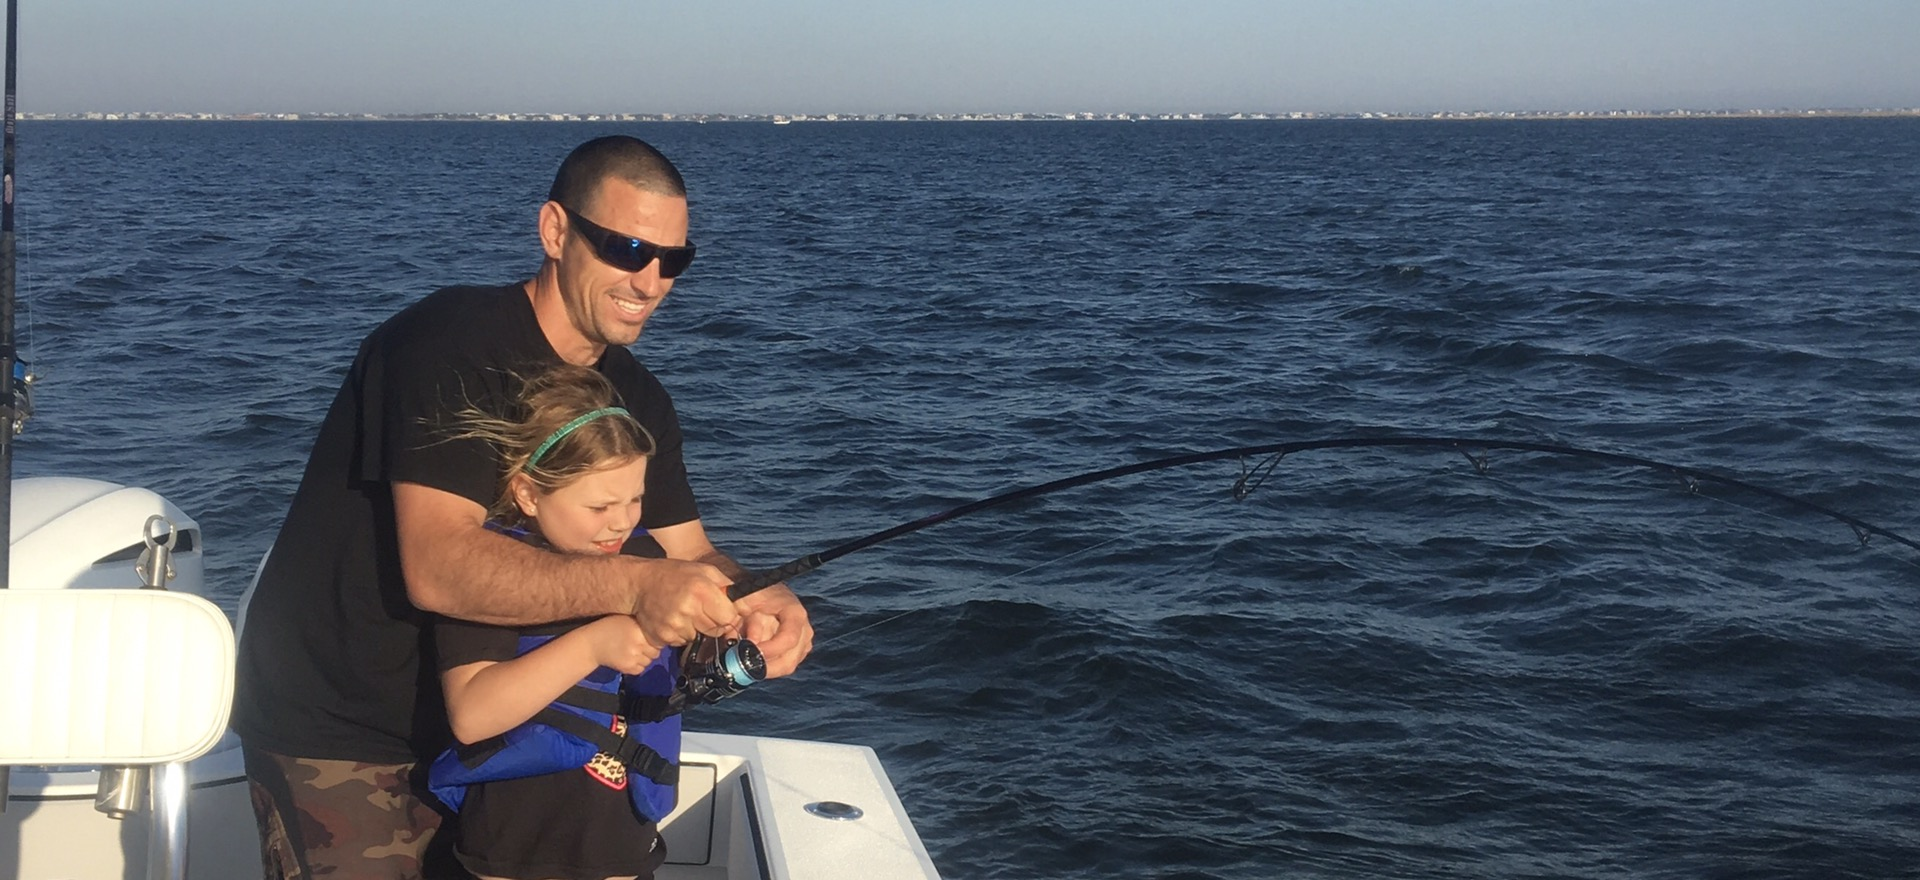 Lbi fishing report may 2 2017 lbi fishing report the inlet is the epicenter of the bluefish bite however the back bay and surf are great too yesterday throughout the day there was a good pick nvjuhfo Image collections